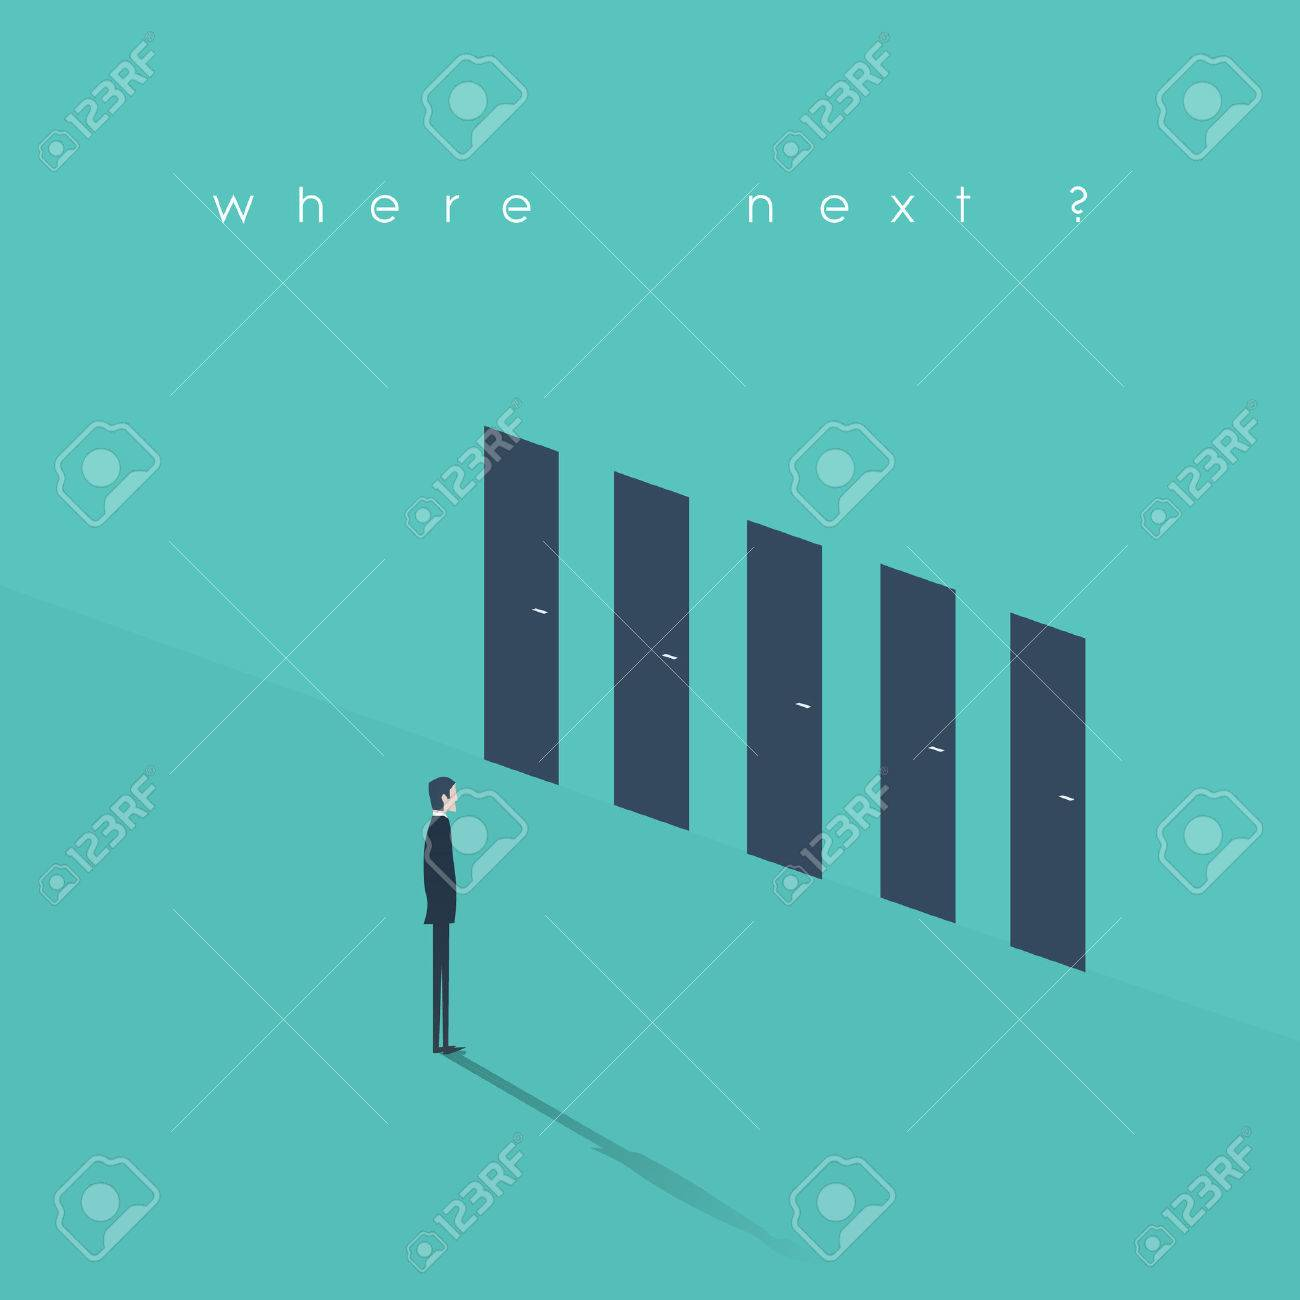 Business decision concept illustration. Businessman standing in front of doors as symbol of choice, career path or opportunities. - 53159731